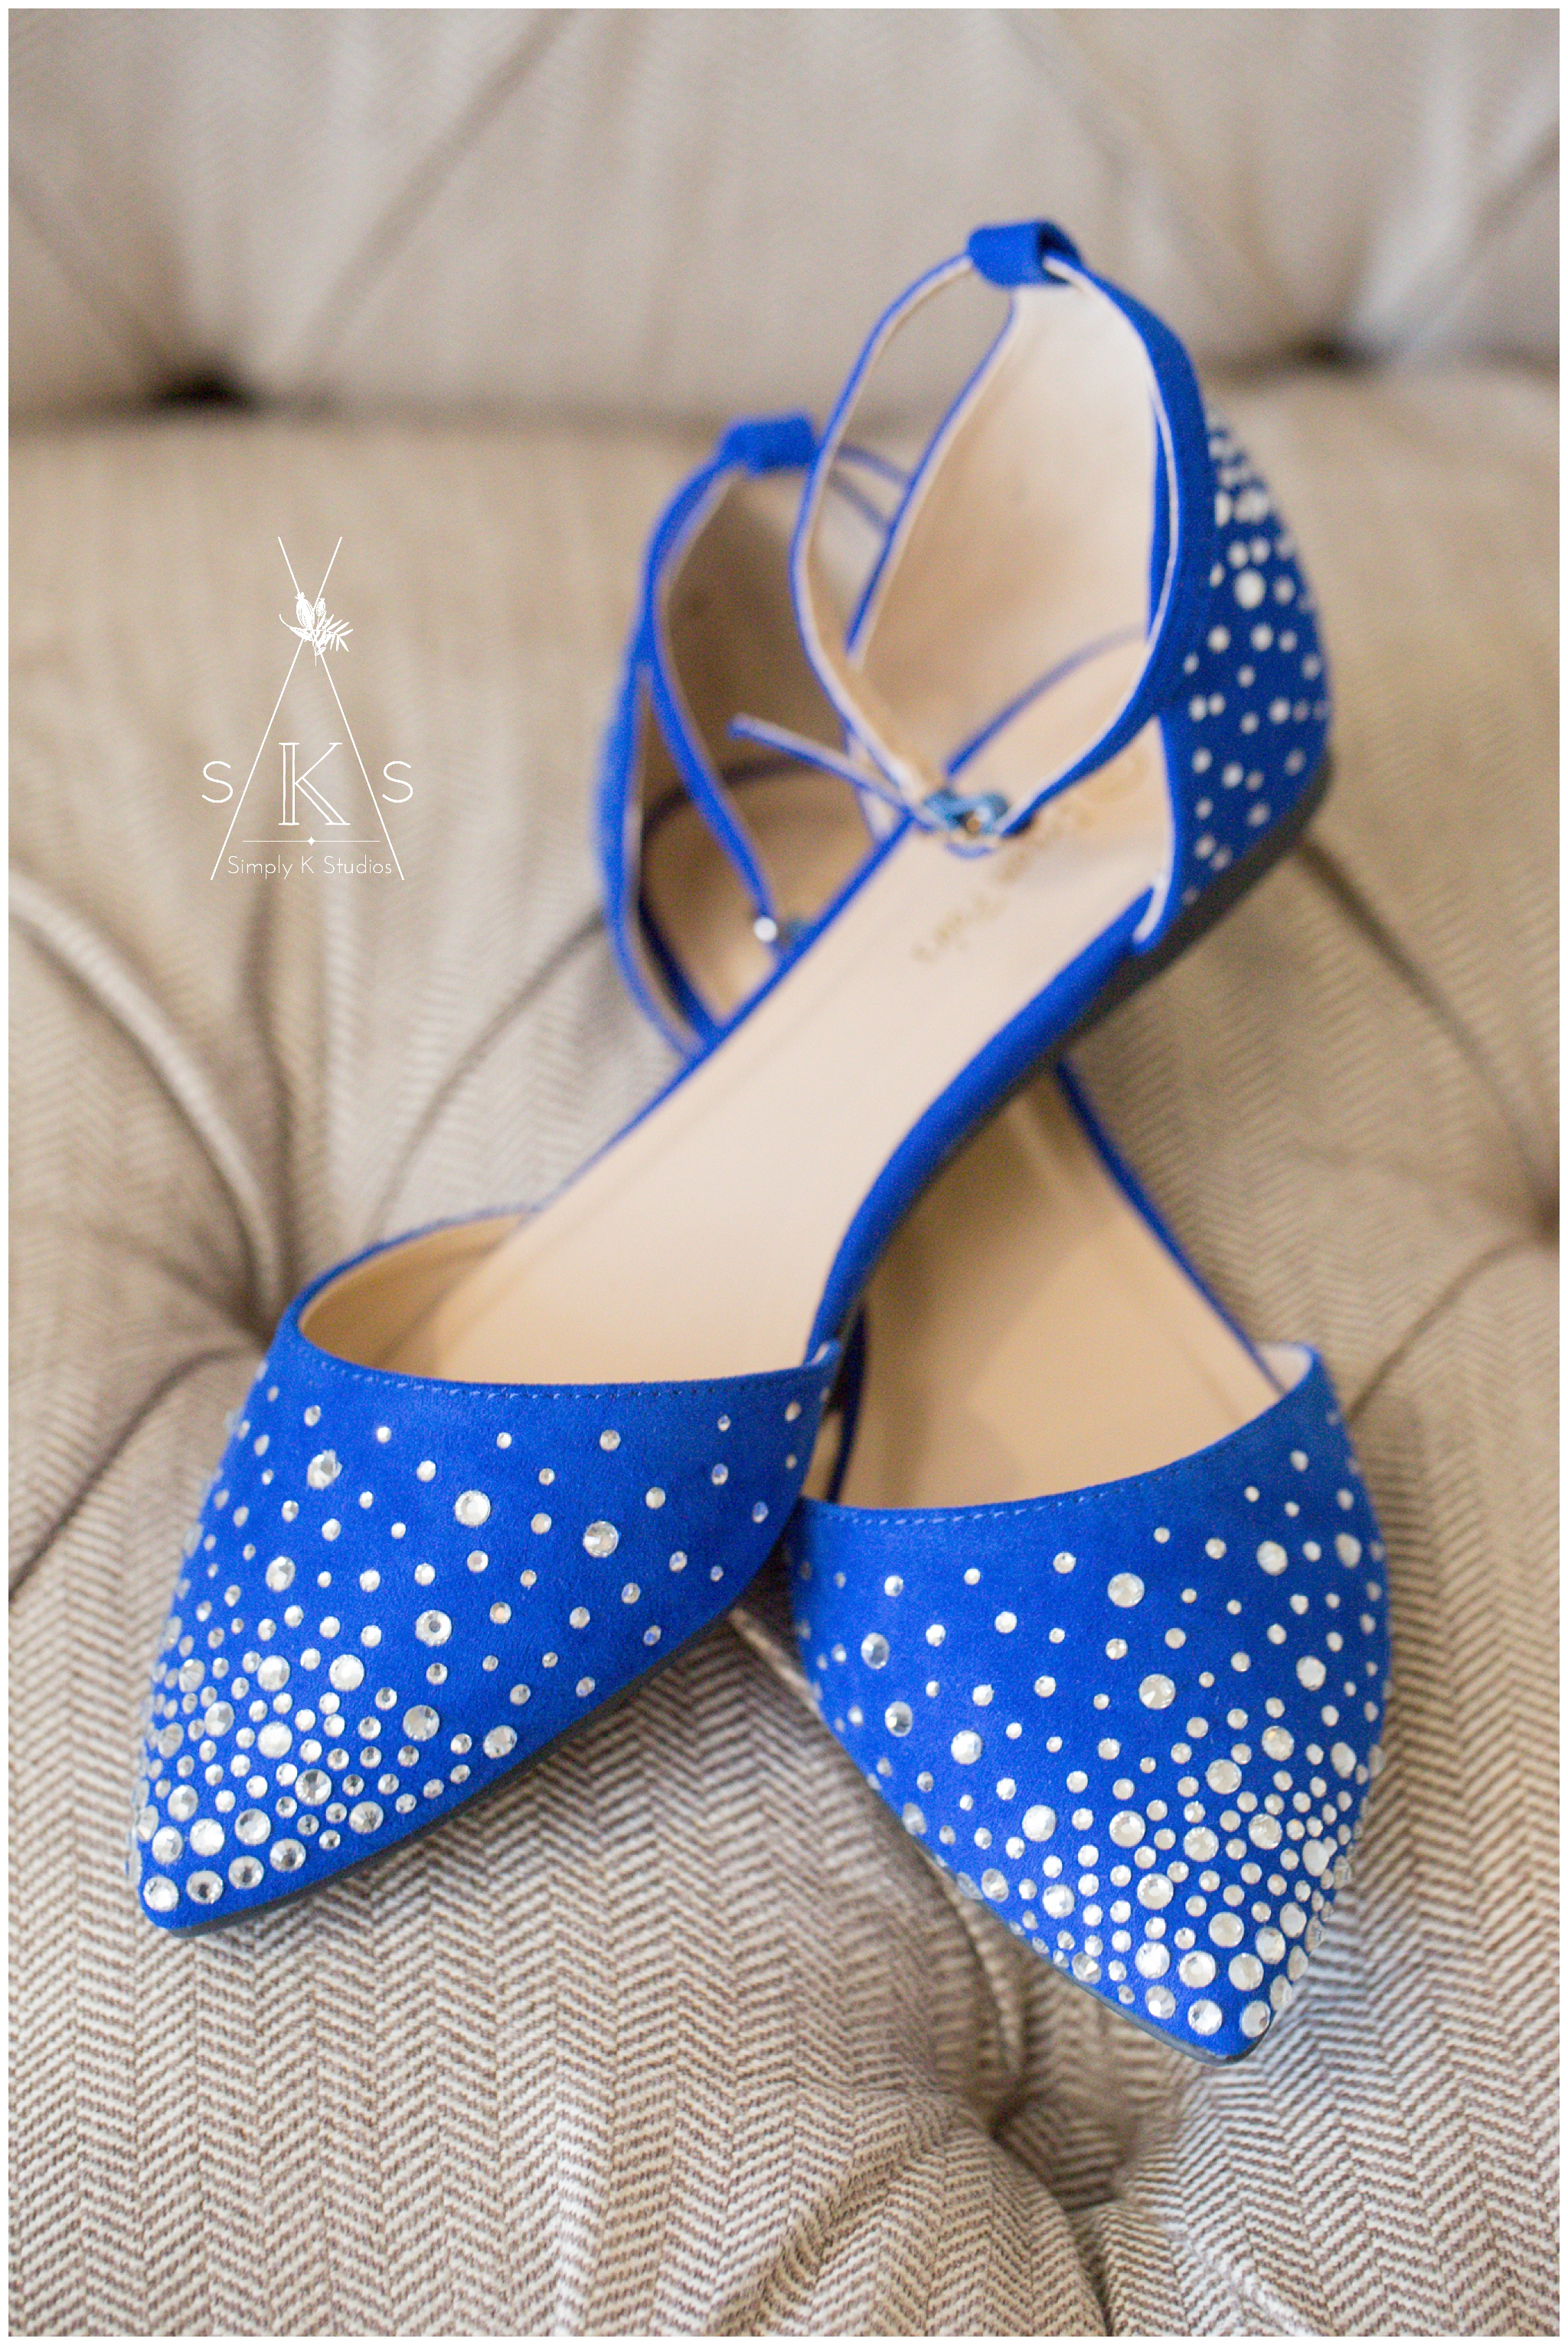 8 Something Blue Ideas for a Wedding.jpg